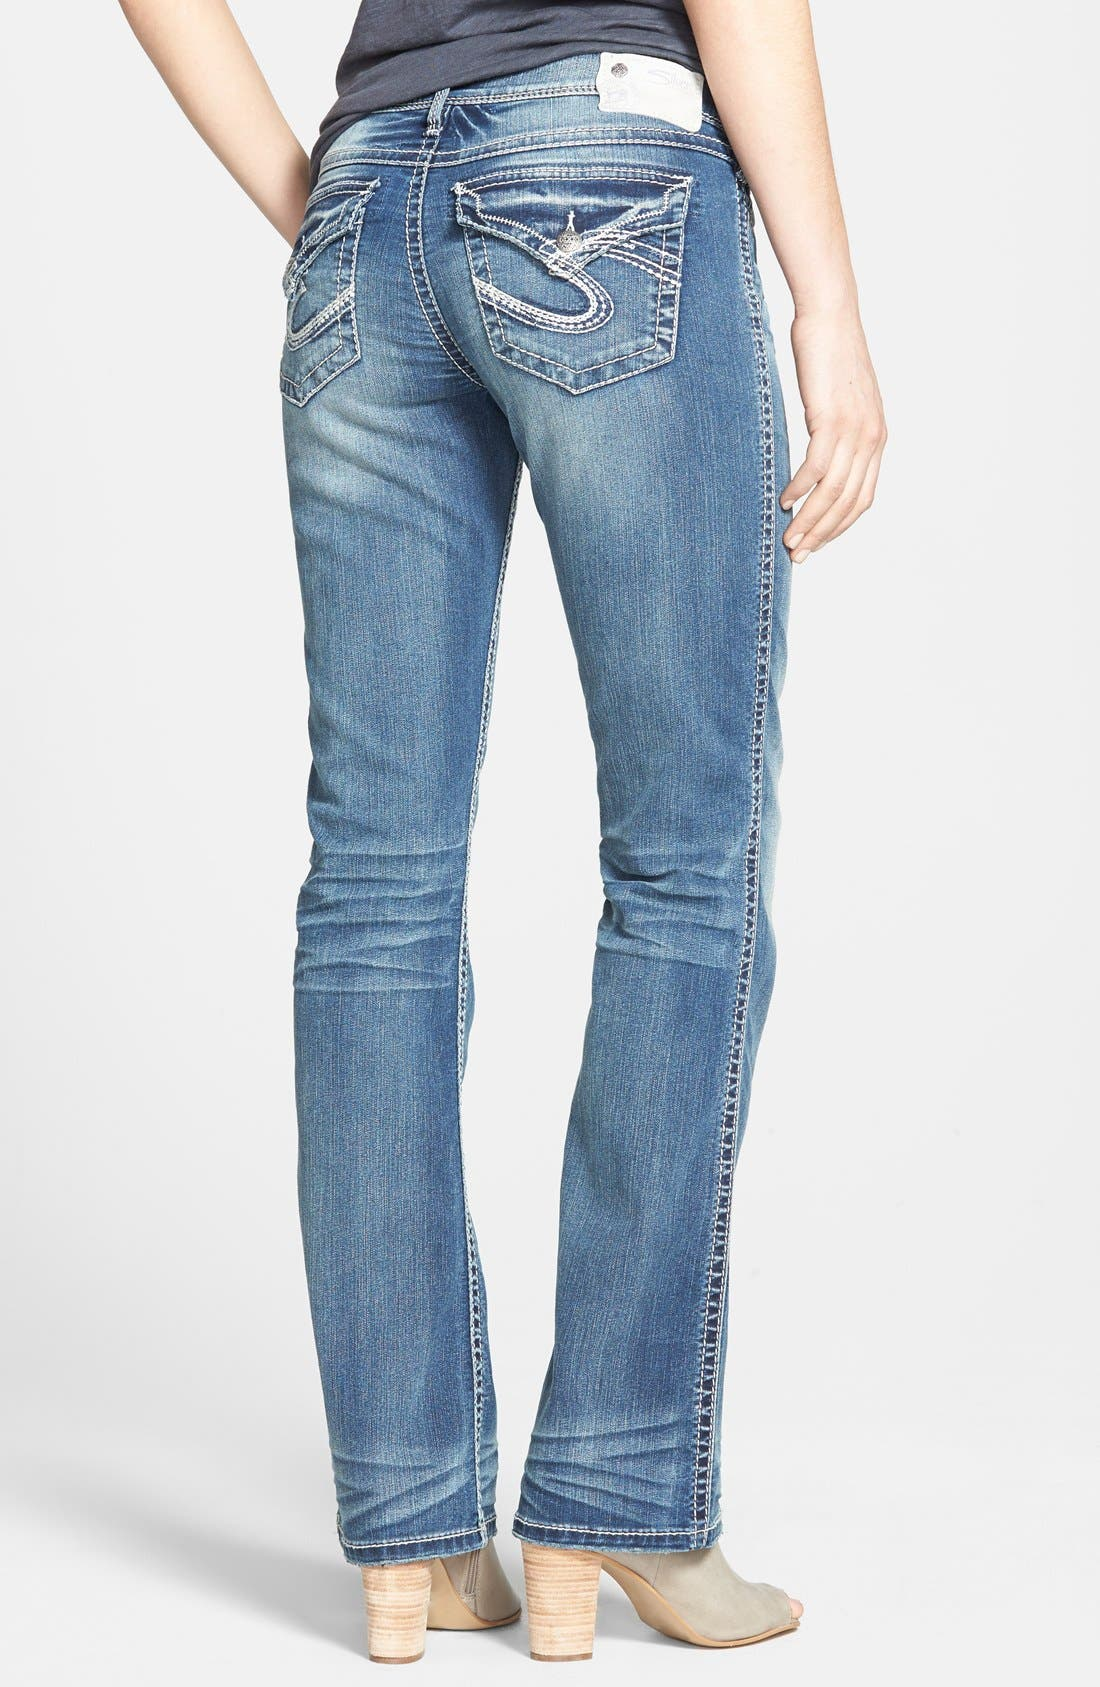 Alternate Image 2  - Silver Jeans Co. 'Tuesday'  Flap Pocket Bootcut Jeans (Indigo)